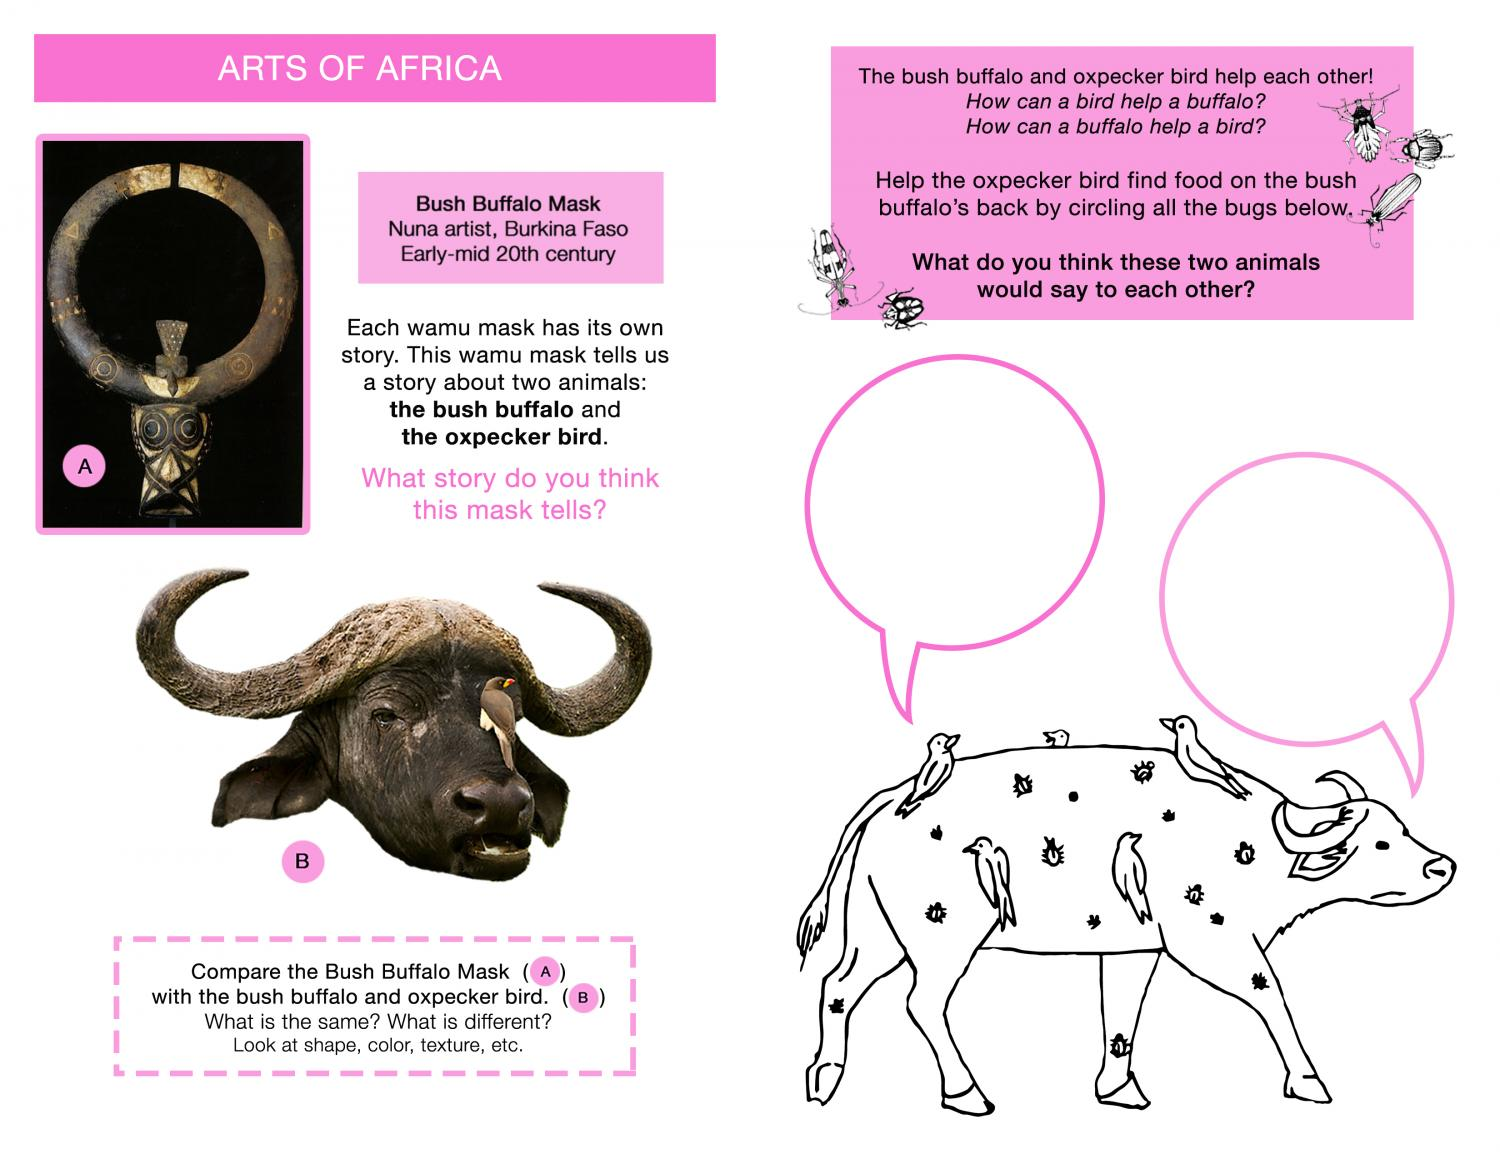 Activity for children that describes an ox mask with a bird on it from the African collection and describes the way animals help each other. Kids can imagine what the ox and bird say to one another.